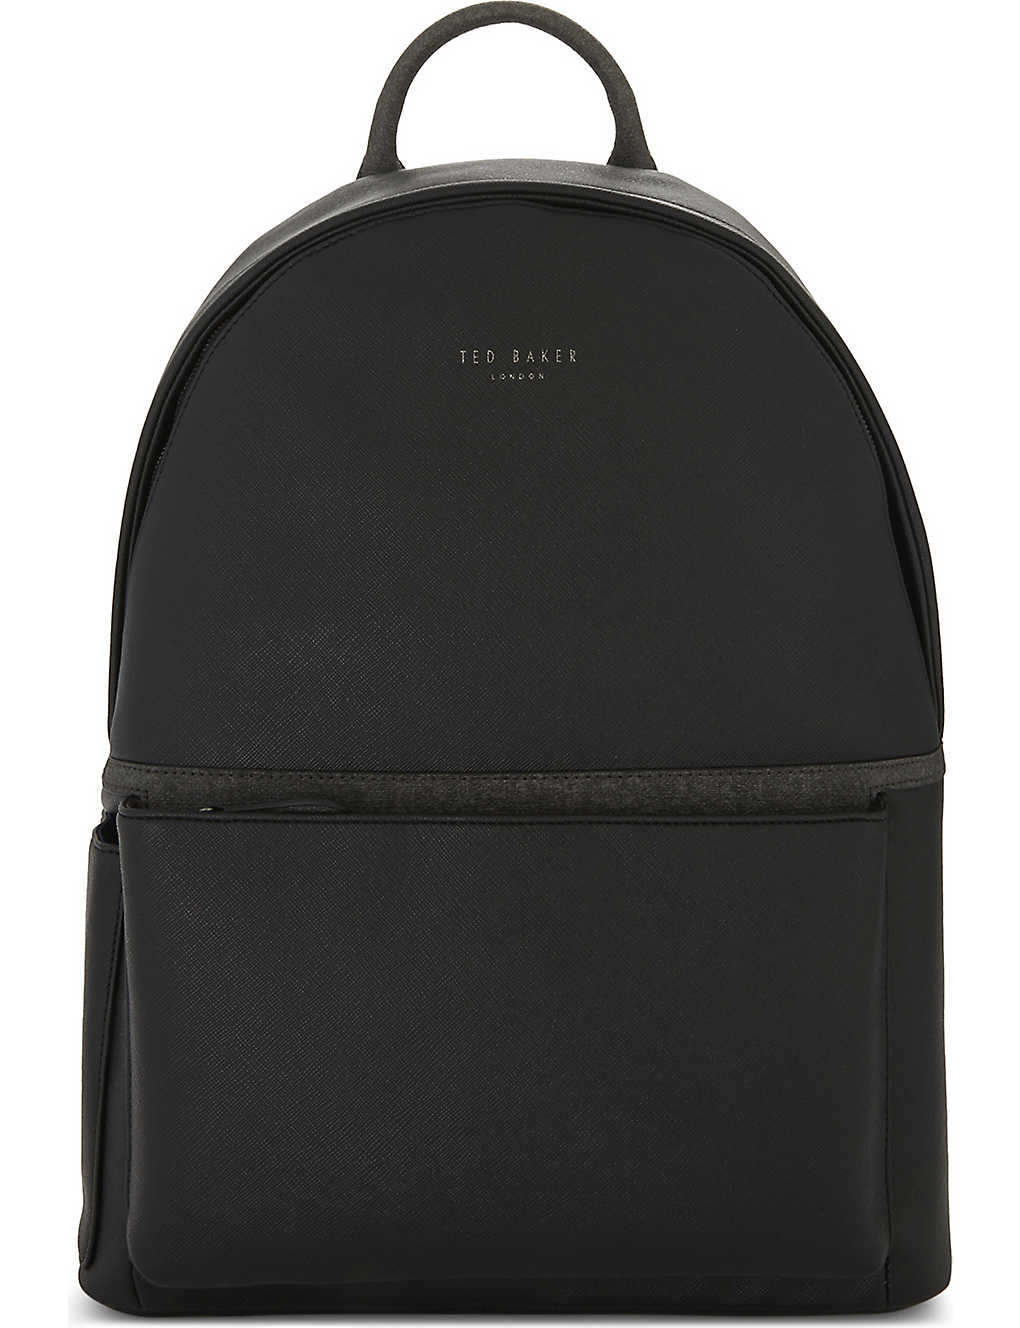 23dd81147 TED BAKER - Fangs crossgrain leather backpack